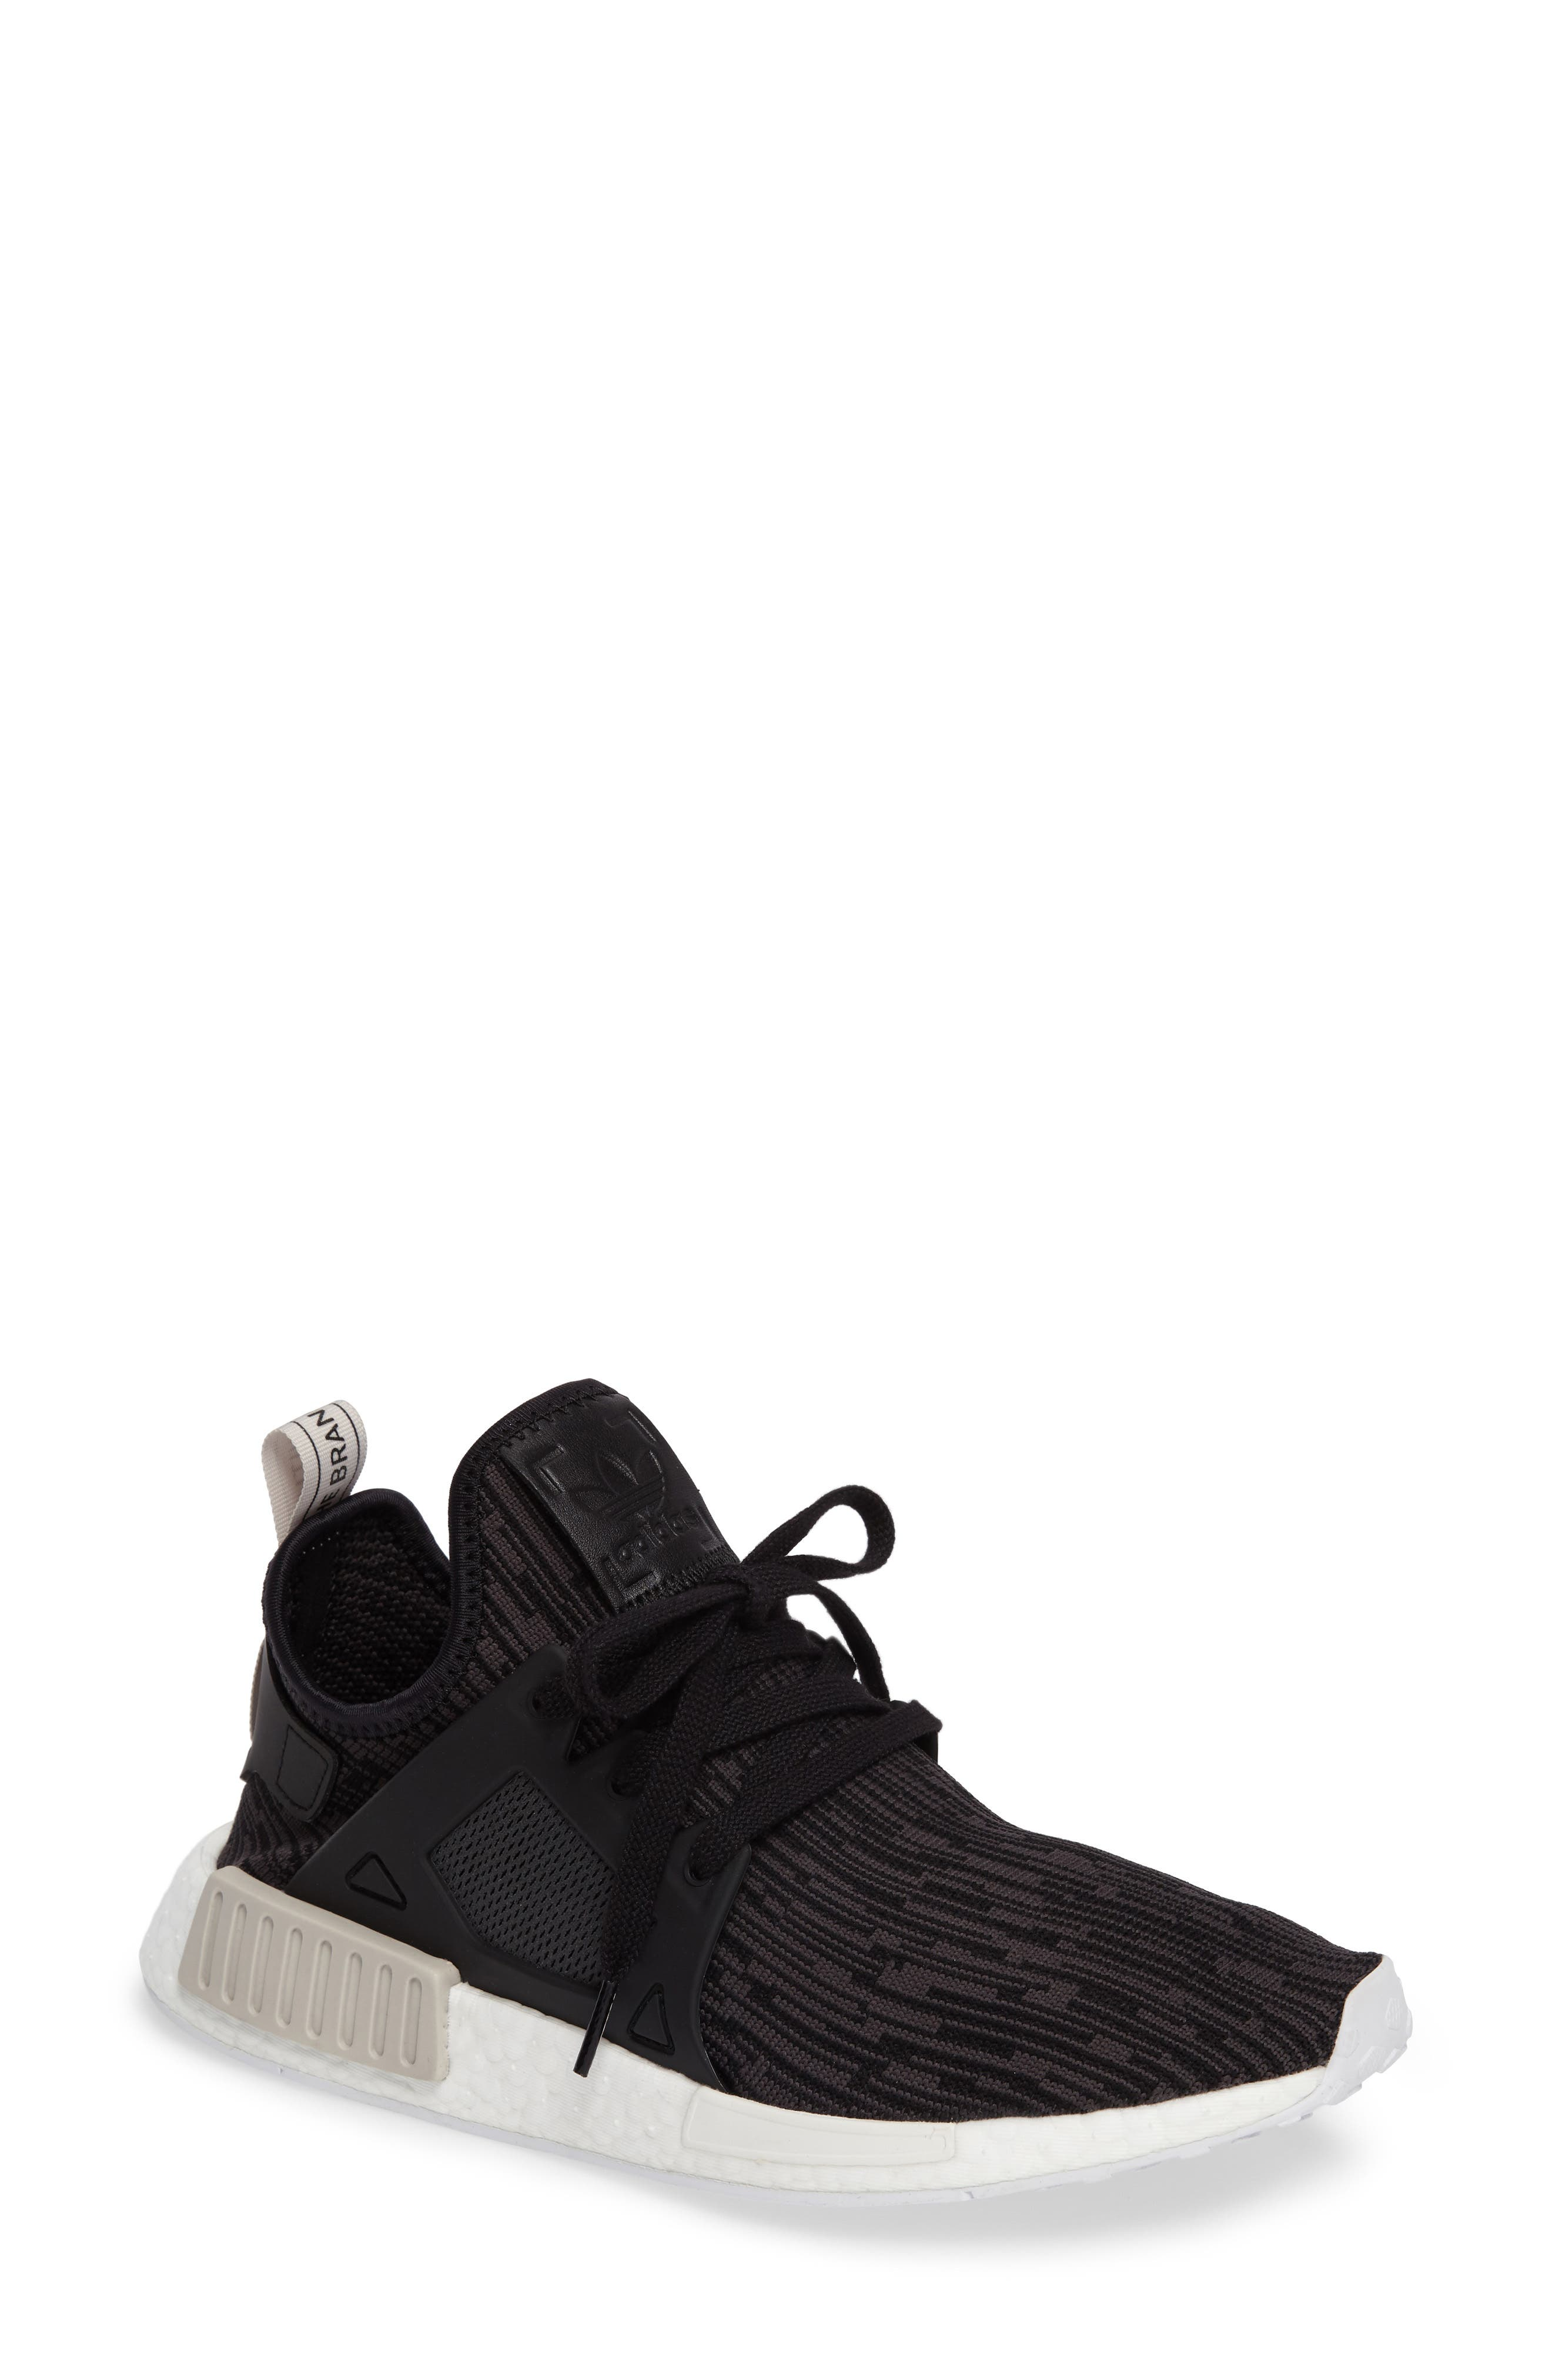 NMD XR1 Athletic Shoe,                         Main,                         color, 001